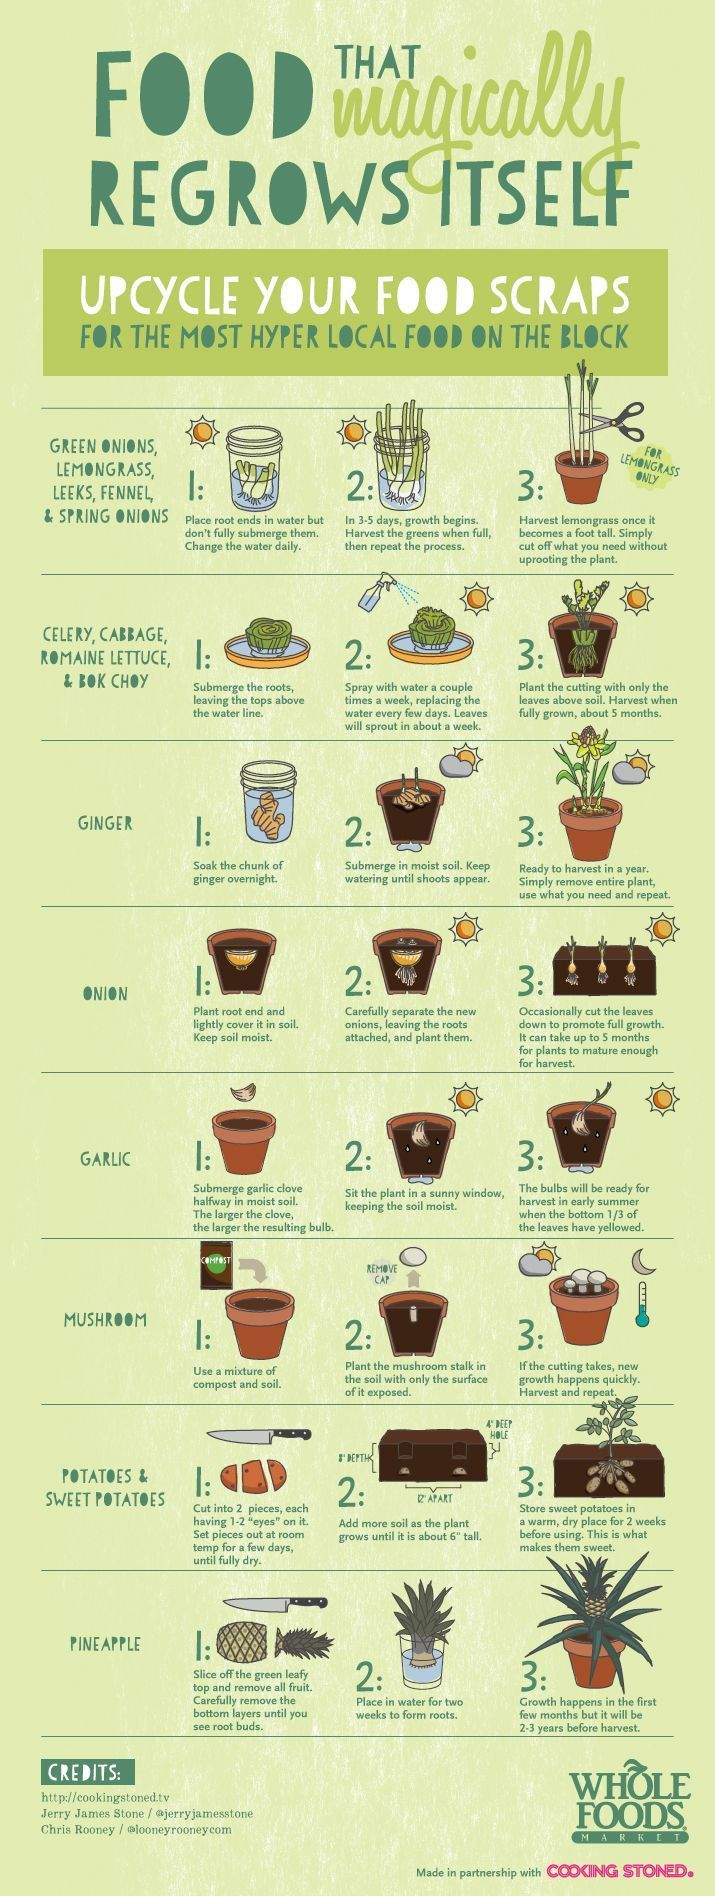 16 Fruits & Veggies you can regrow from scraps